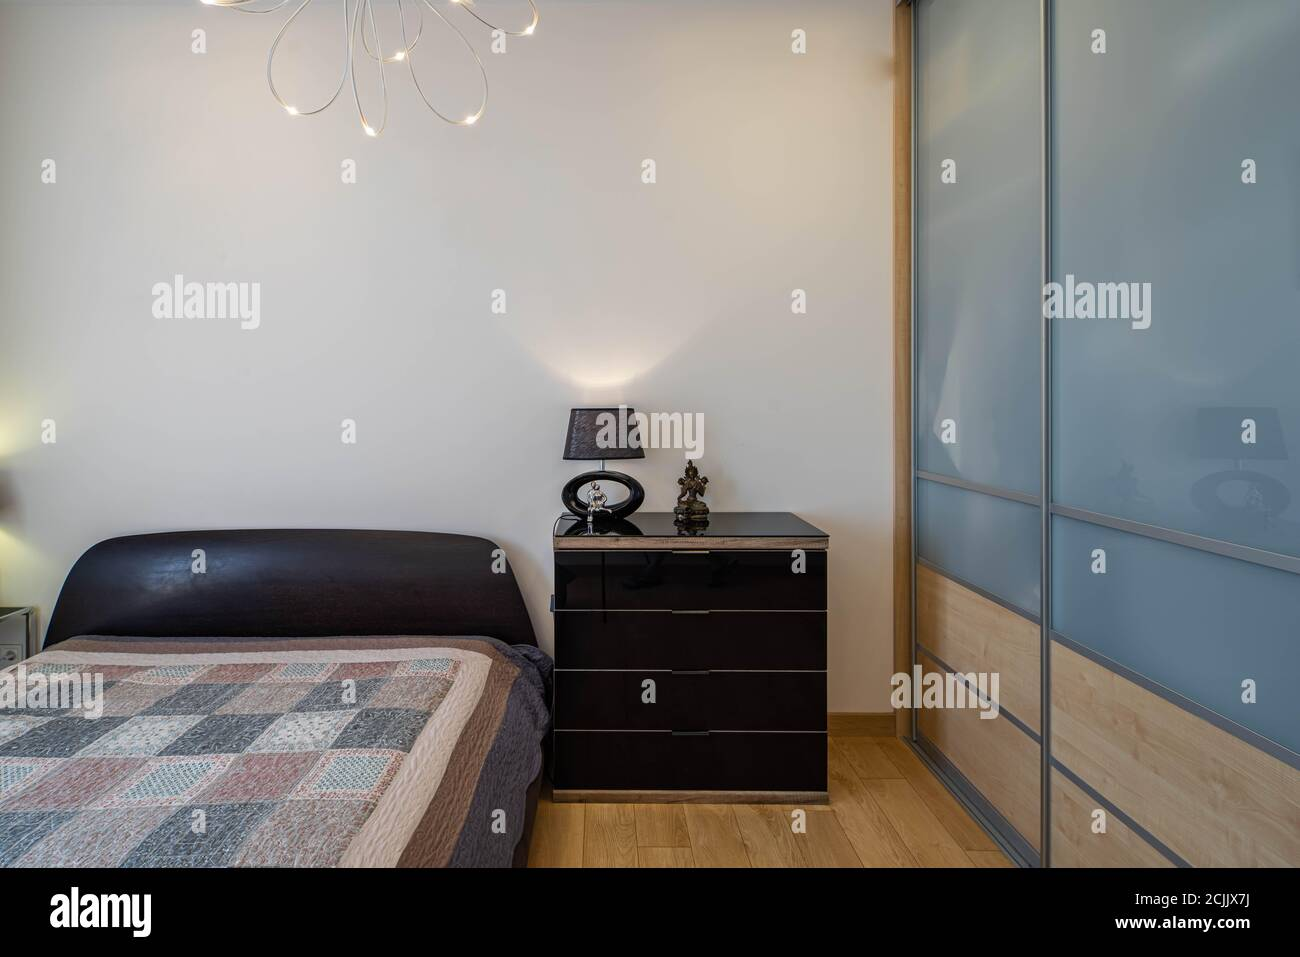 Modern Interior Of Bedroom In Apartment Glass Sliding Door Wardrobe Stylish Dresser Cozy Bed Stock Photo Alamy